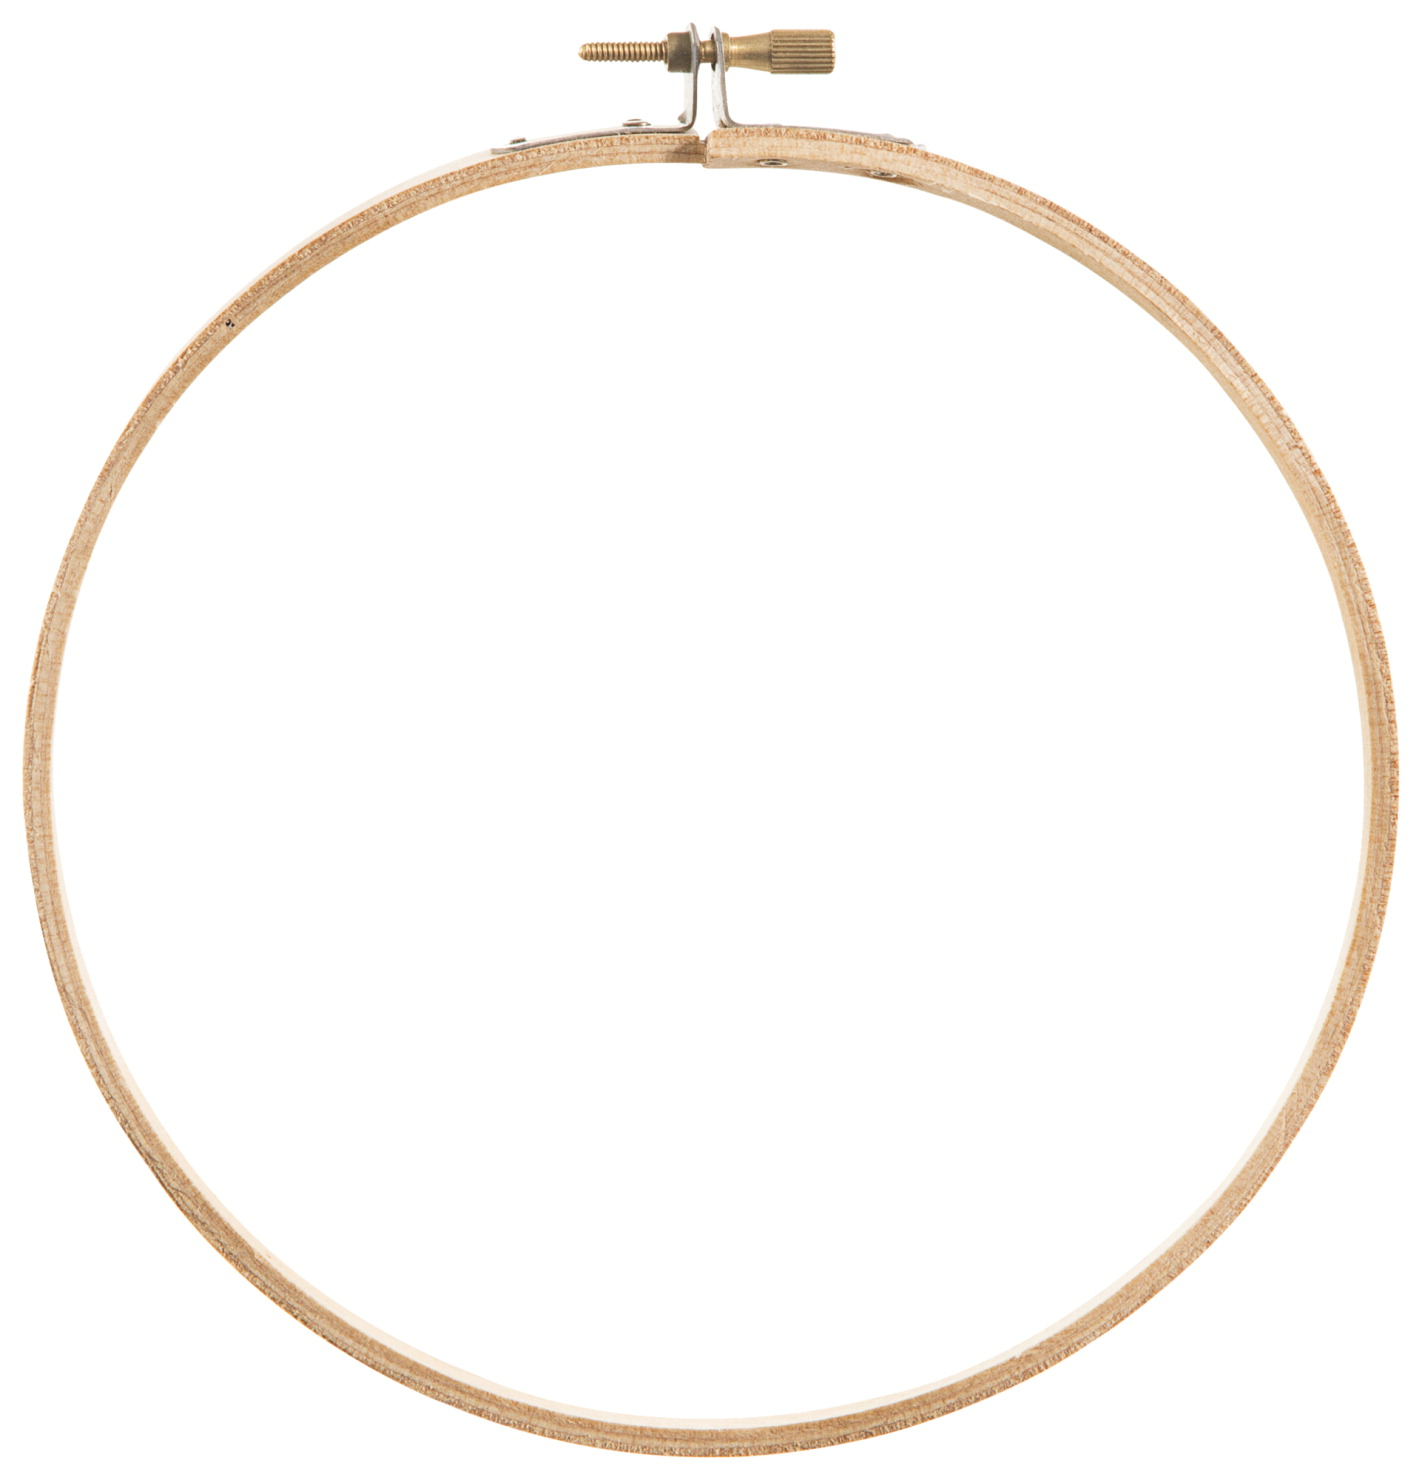 Embroidery Hoop, 6 Inches